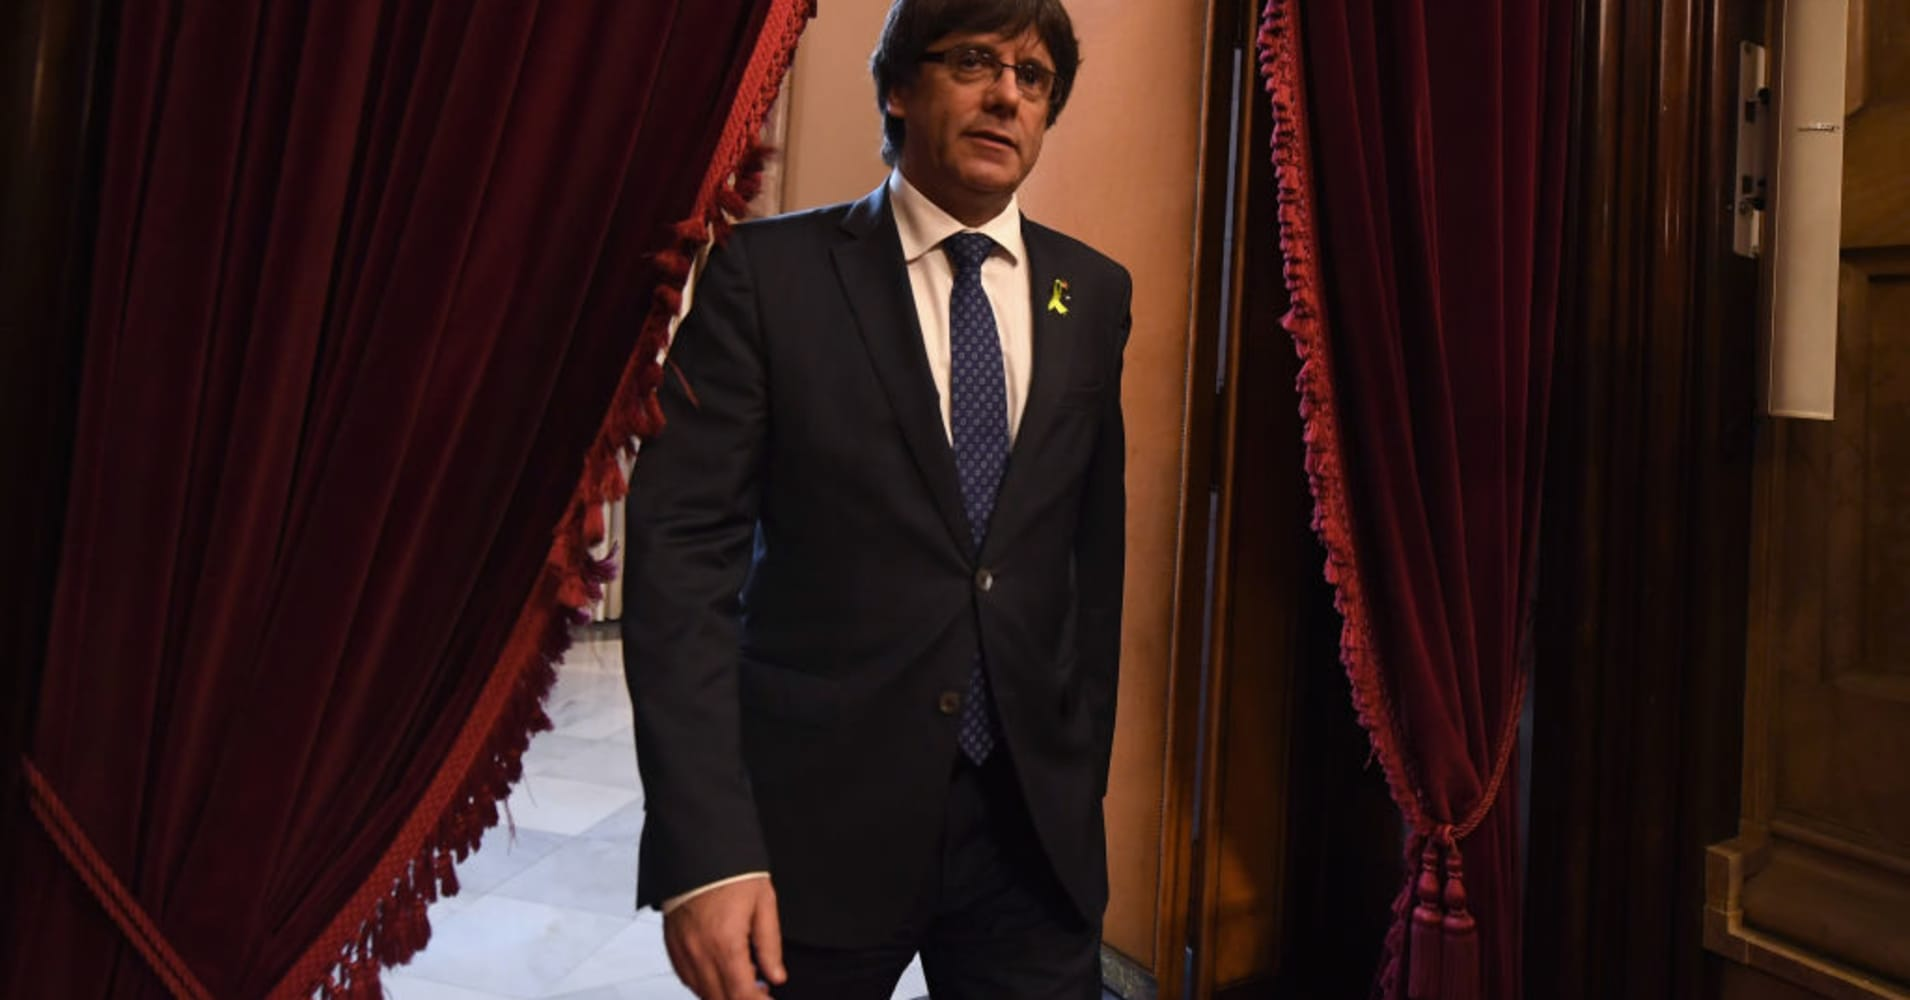 Spain calls for charges against Catalan leaders for 'rebellion and